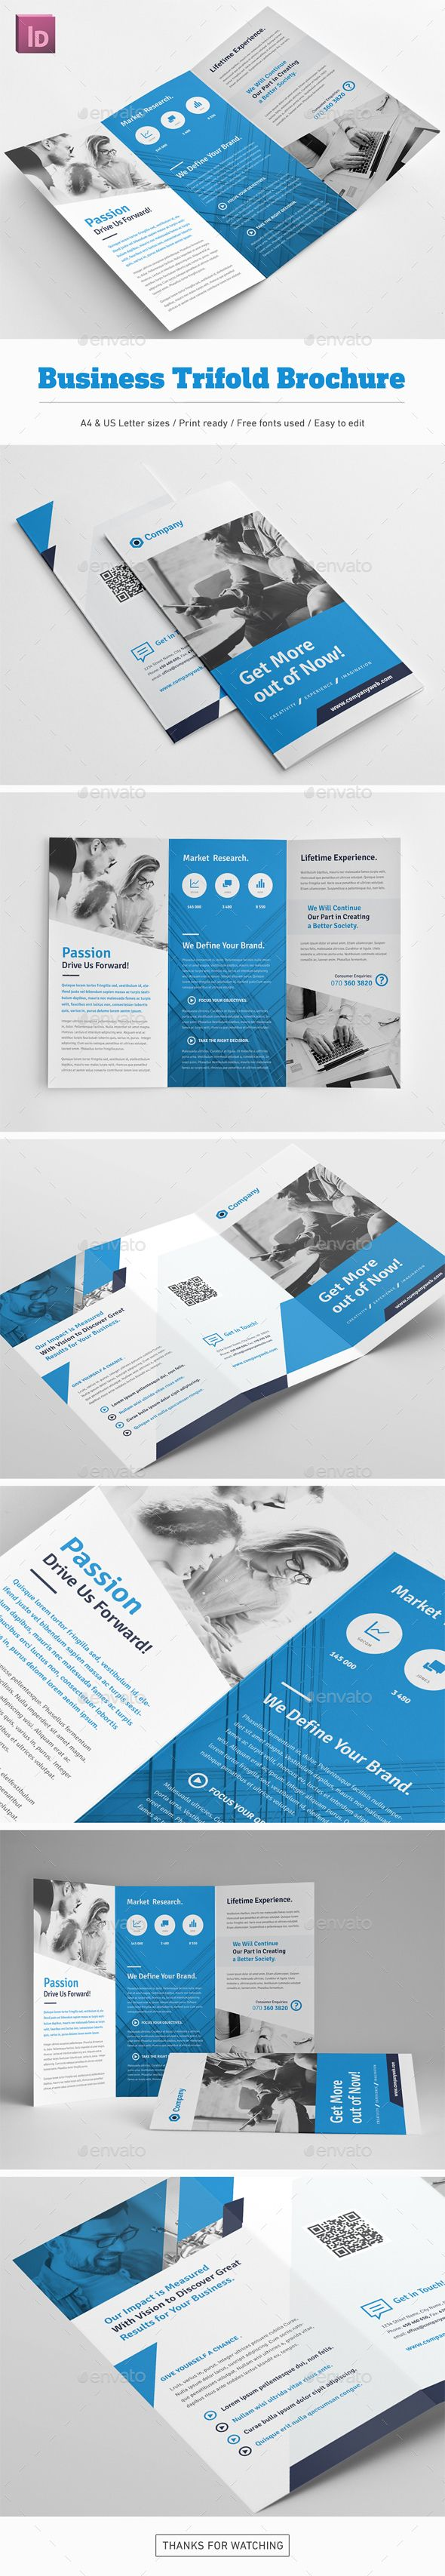 86 best graphicriver images on pinterest